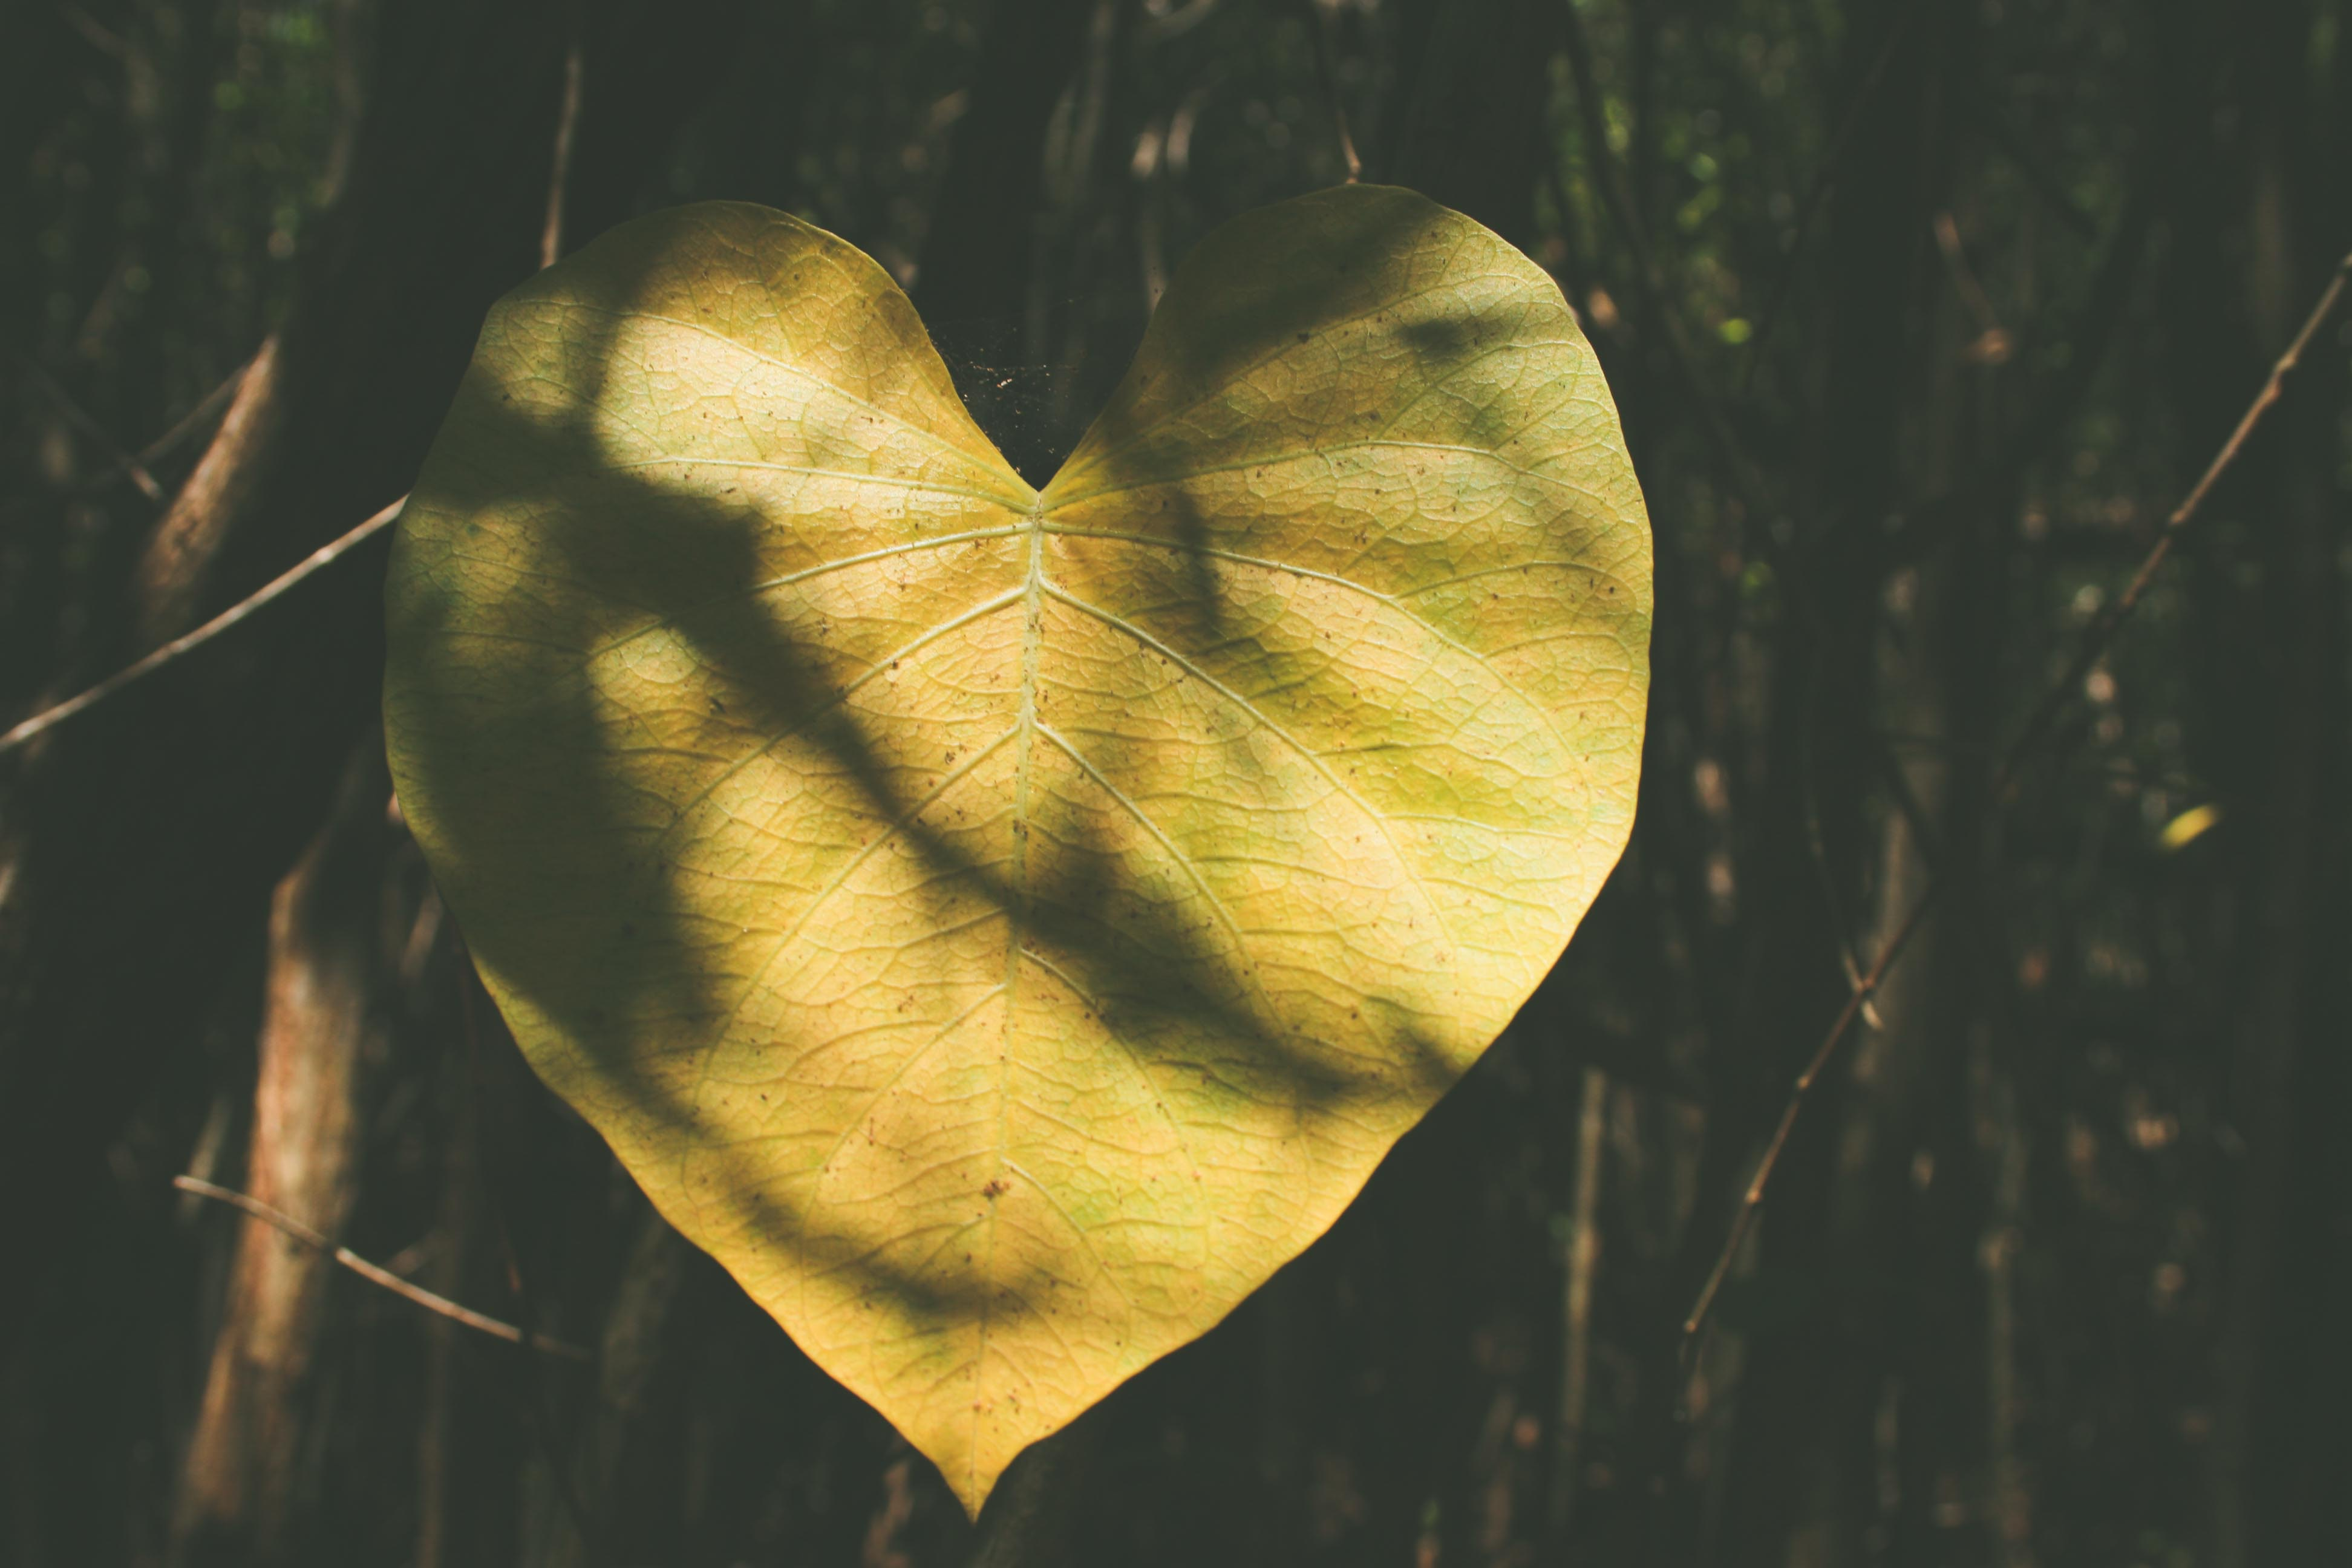 A close-up of a yellow heart-shaped tree leaf